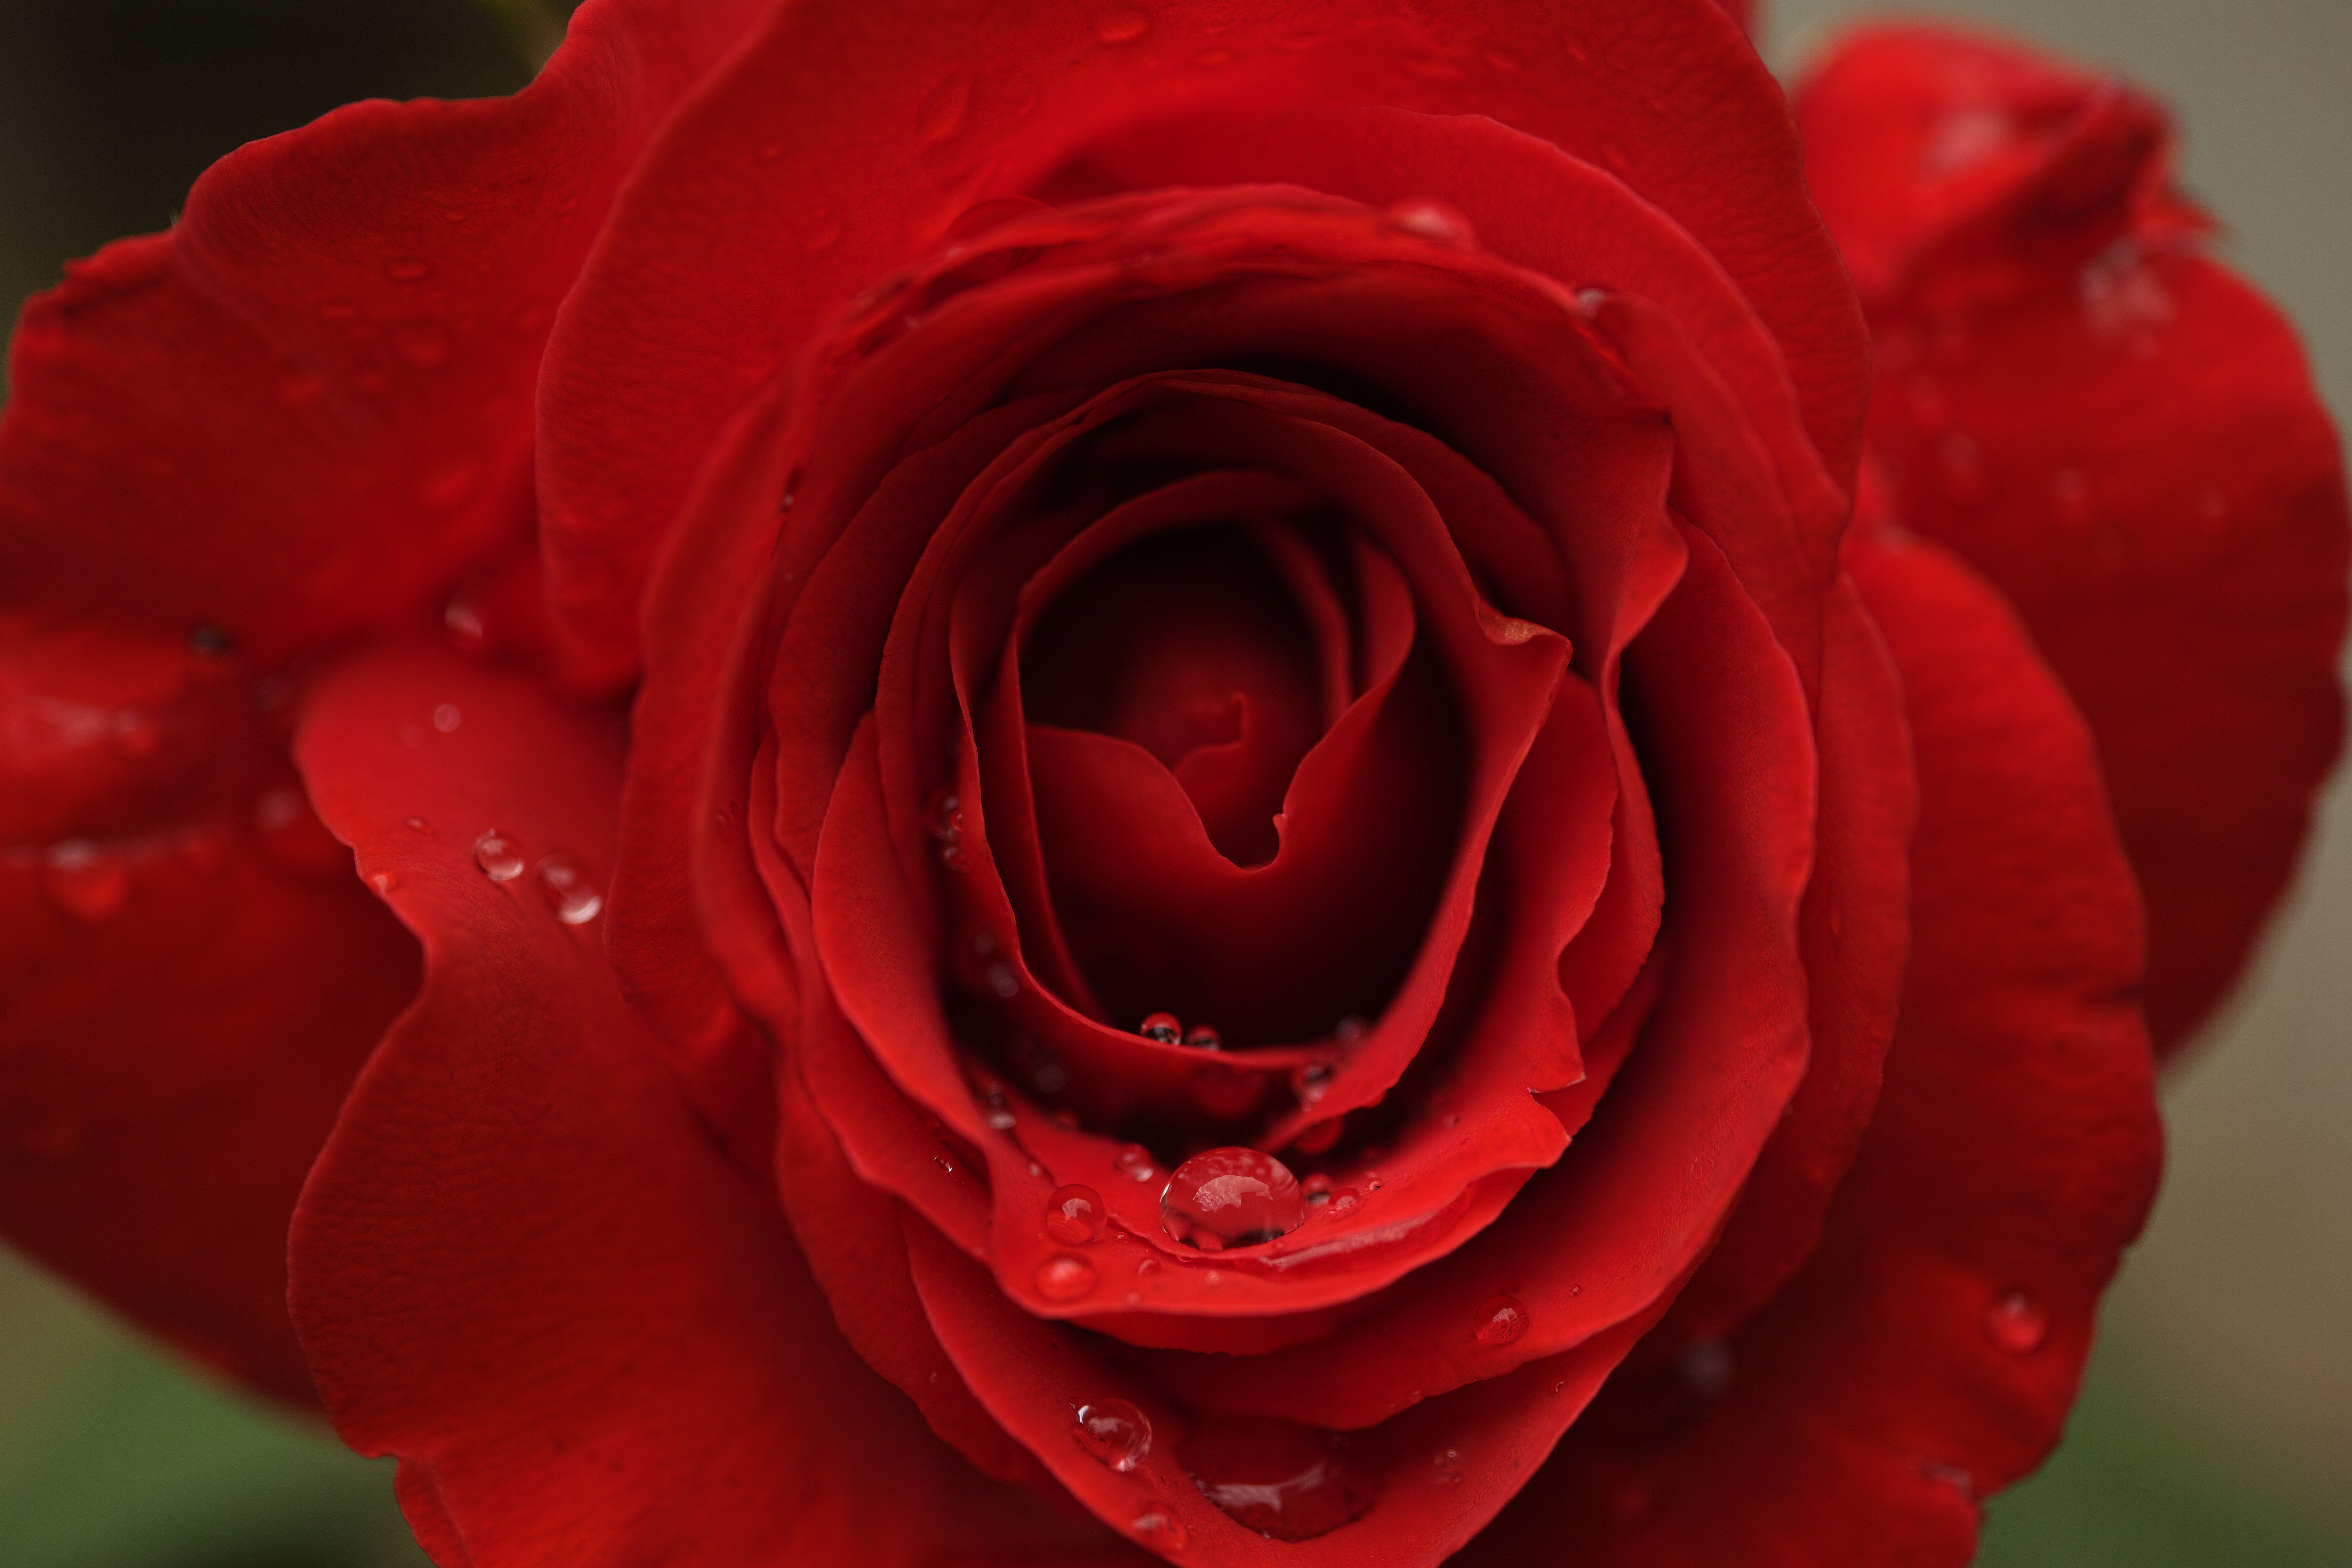 137590 download wallpaper Flowers, Rose Flower, Rose, Petals, Drops, Macro screensavers and pictures for free